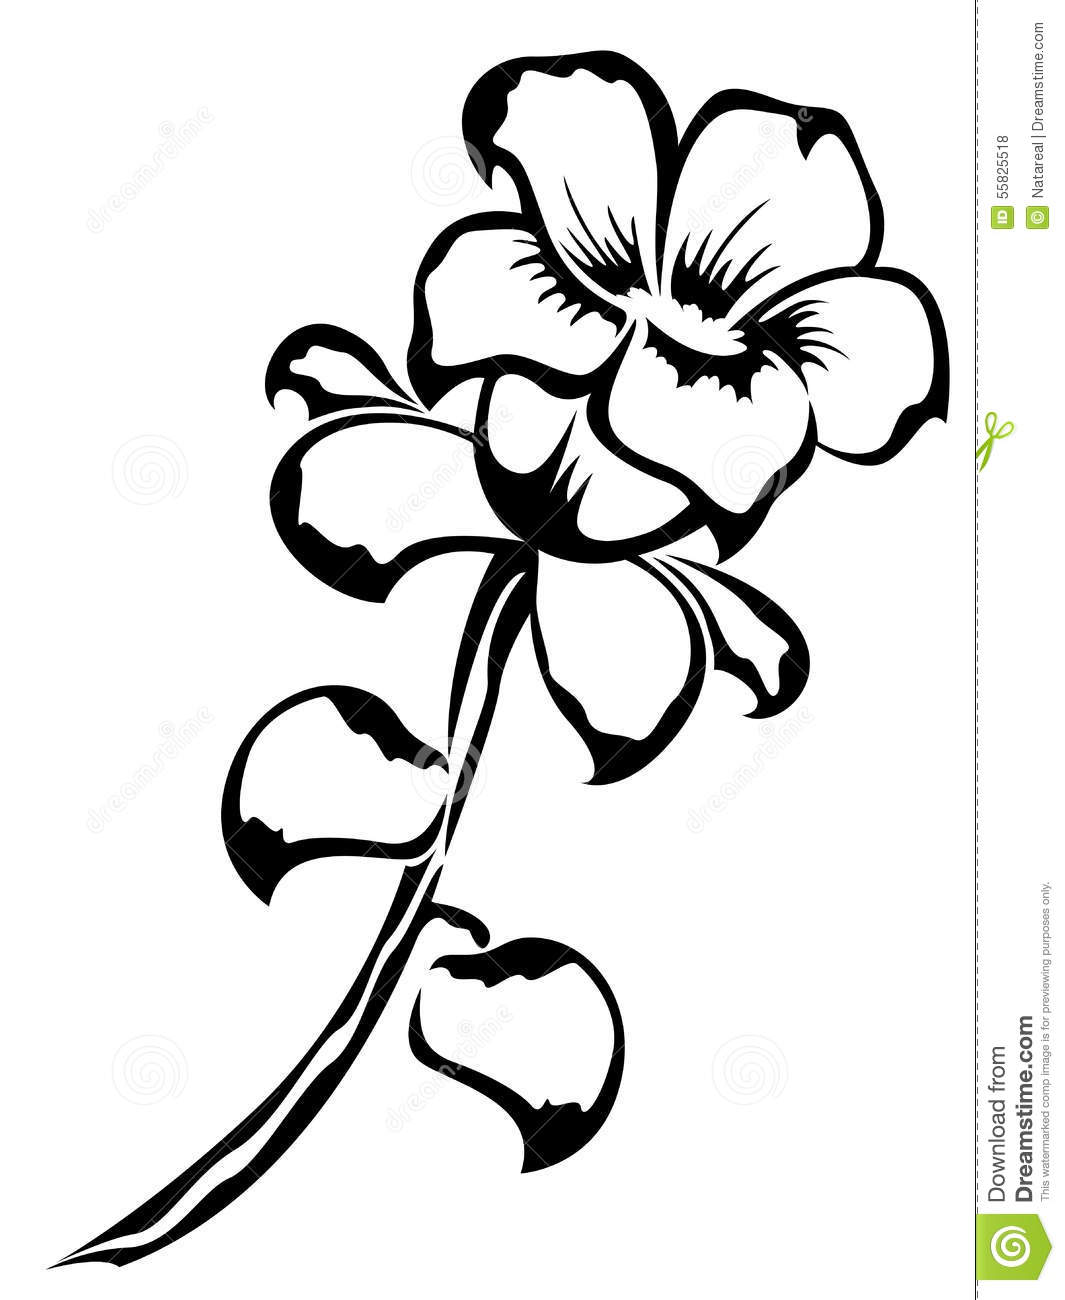 Black outline of single flower stock vector illustration of black outline of single flower mightylinksfo Gallery